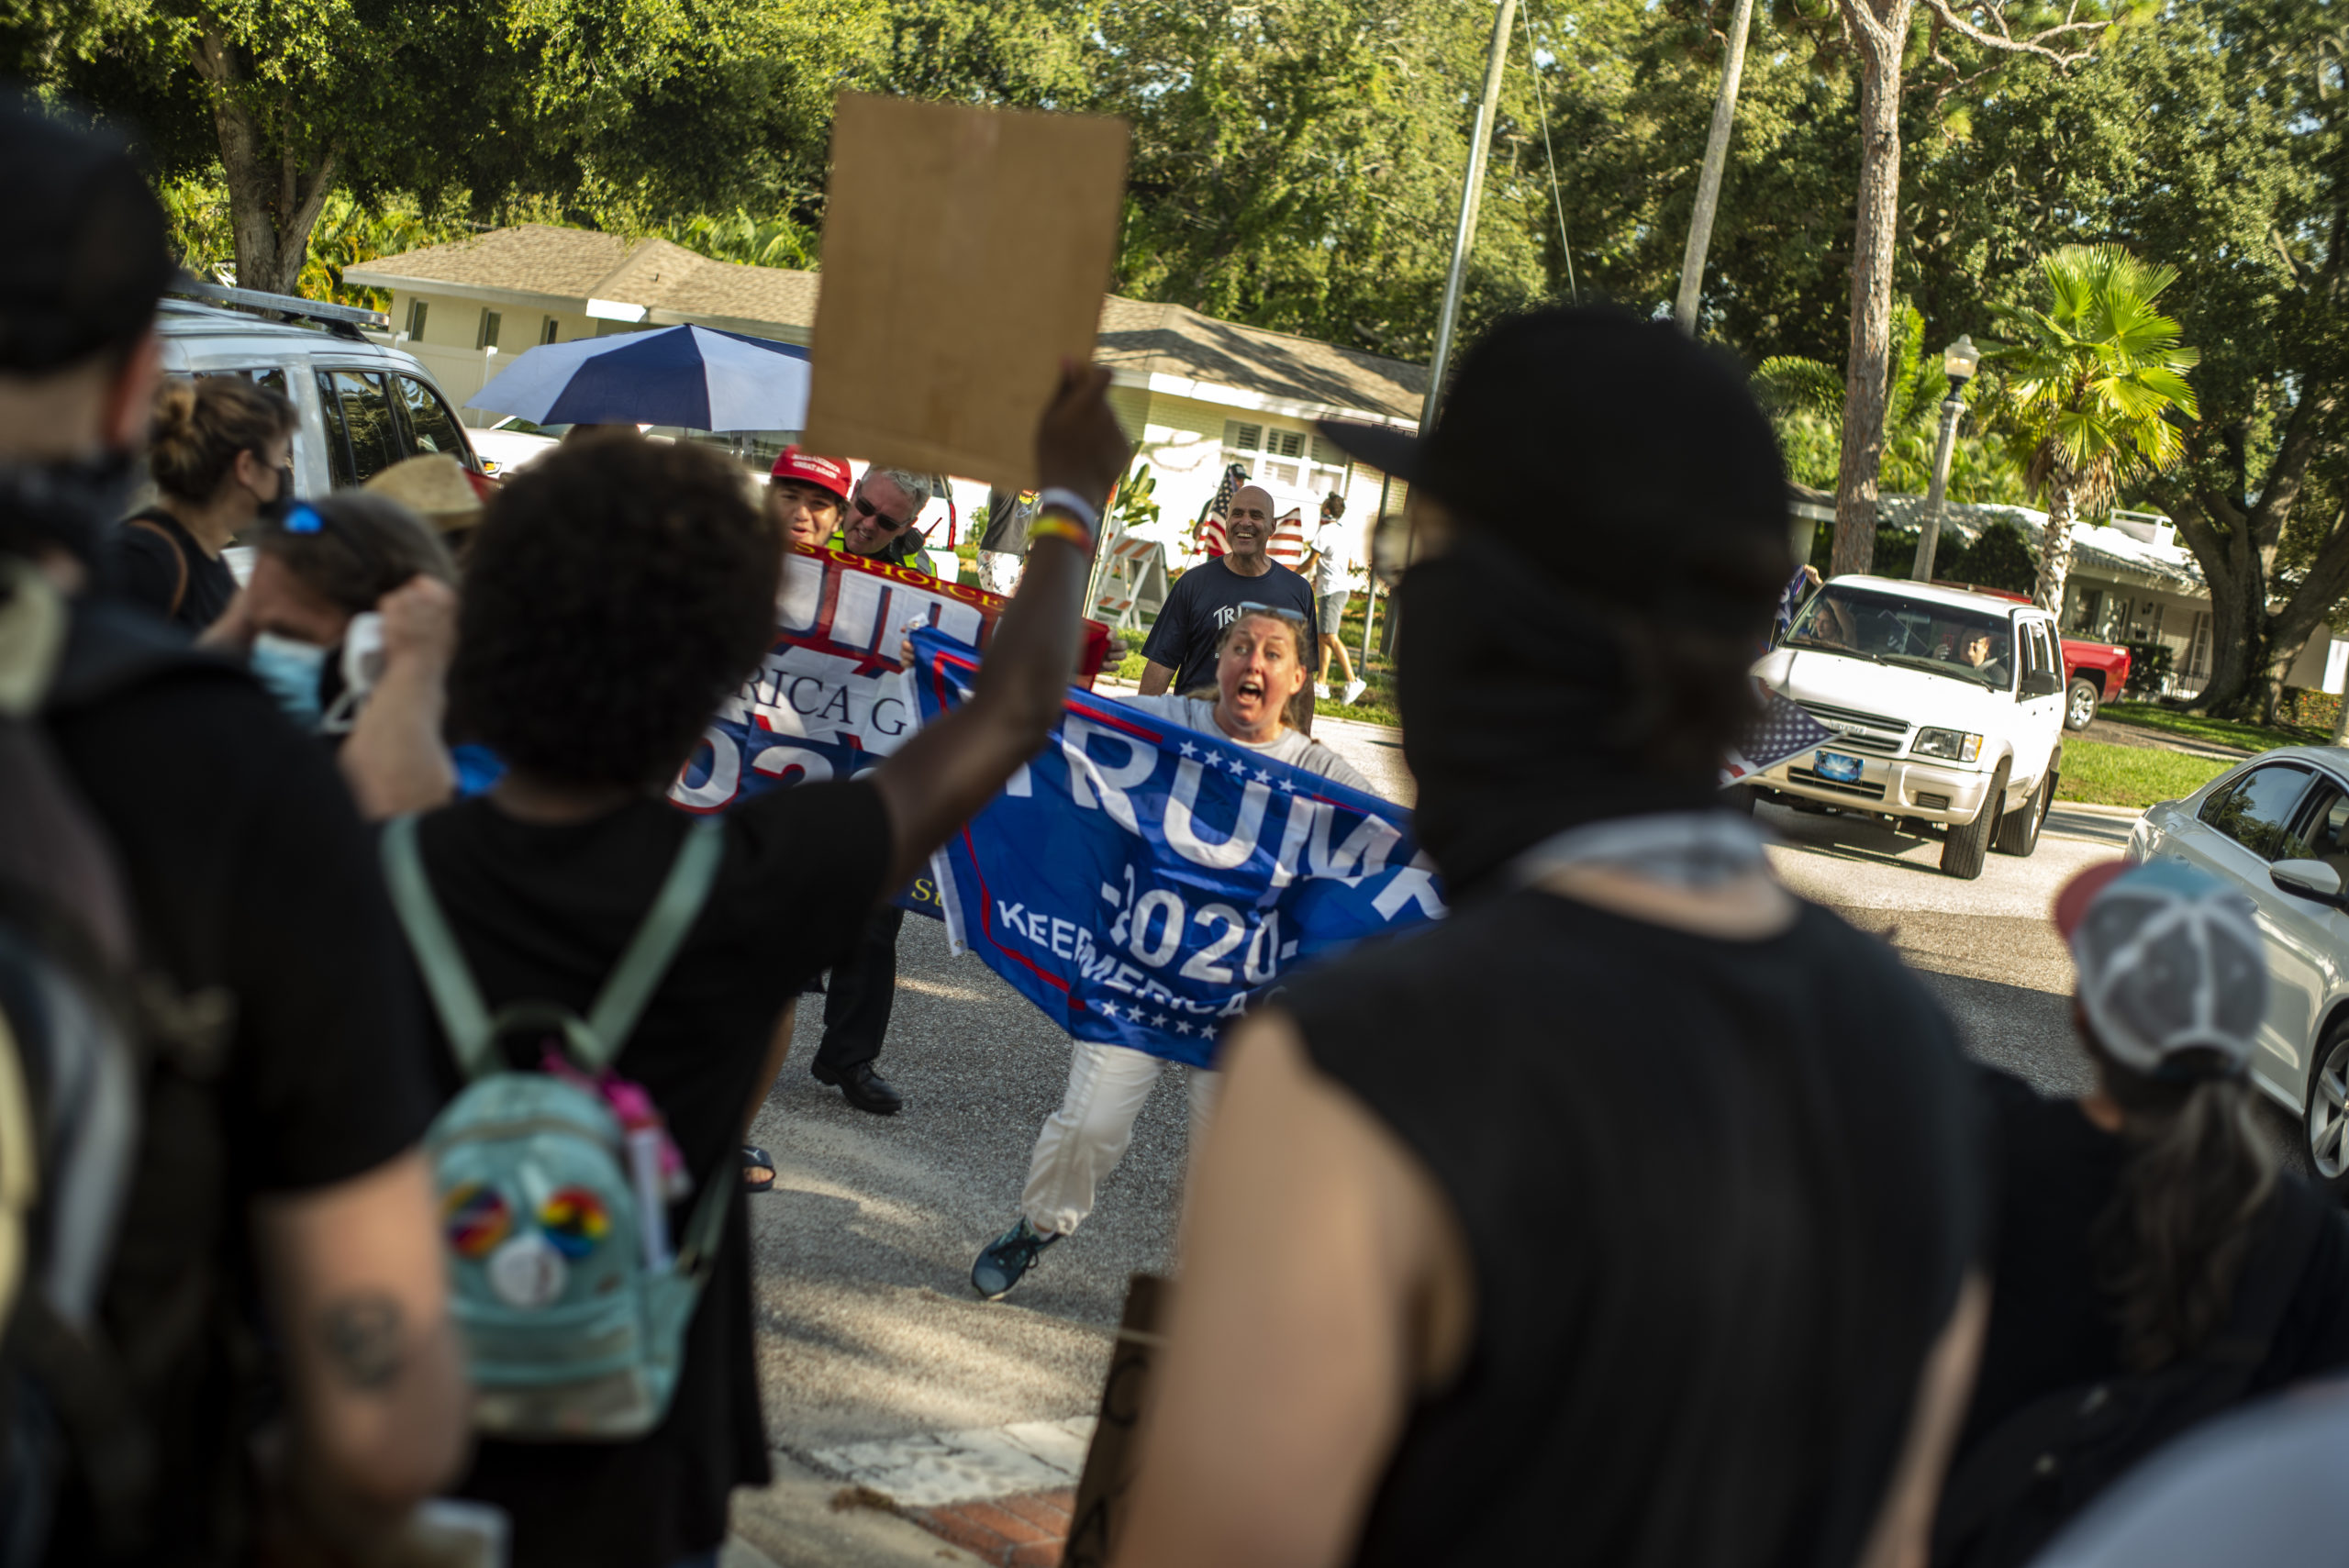 Trump supporters suqare off with Black Lives Matter protesters